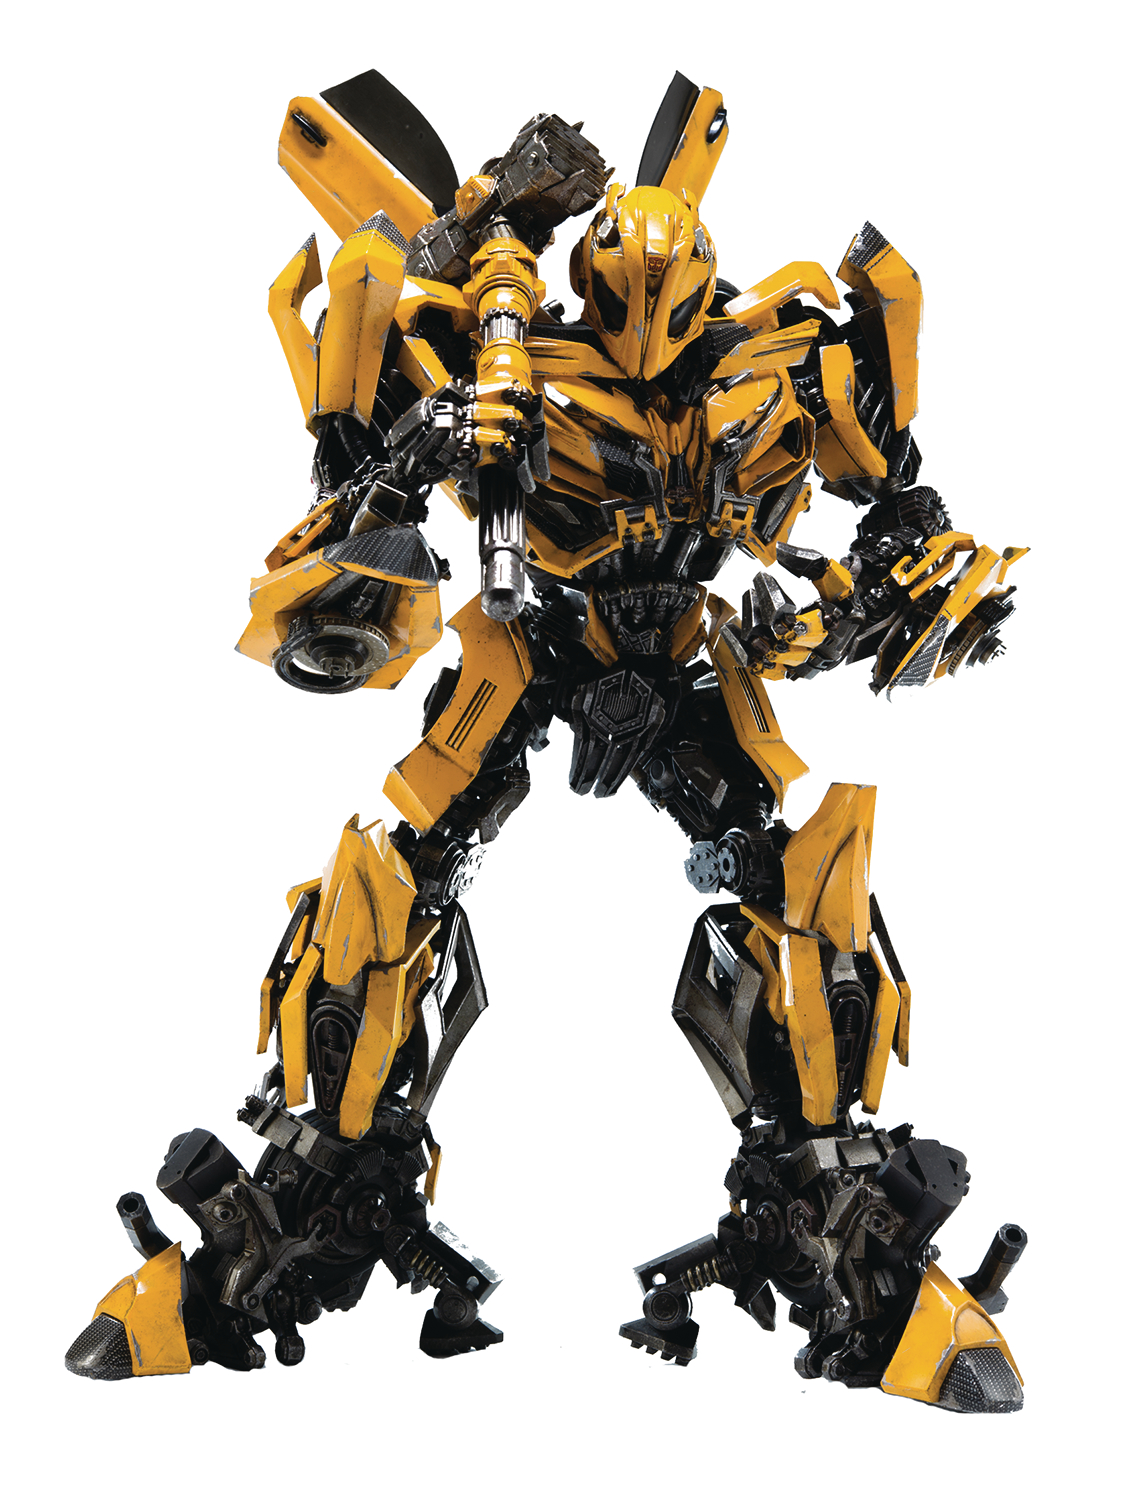 TRANSFORMERS LAST KNIGHT BUMBLEBEE PREMIUM SCALE FIG  (